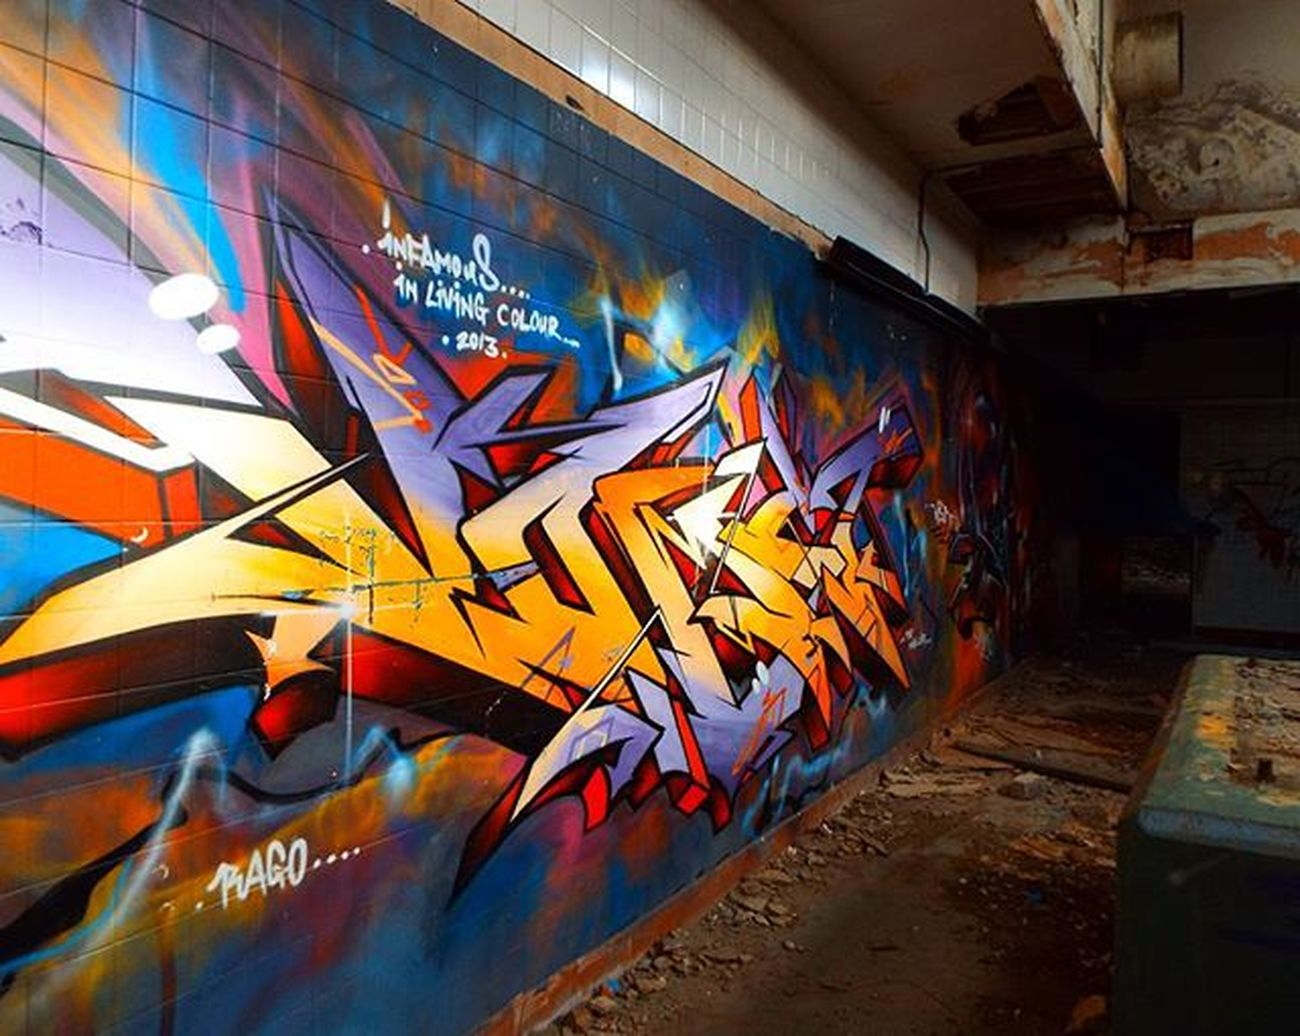 Graffiti Graffitiporn Graffitiphotographer Urbanexploration Urbanexplorer Urbex_rebels Urbex Ww2 Ww1 Military Militarybuilding Derelict Derelictplaces Abandonedmilitary Urbanphotography Abandoned_junkies Nofilter EyeEm_abandonment